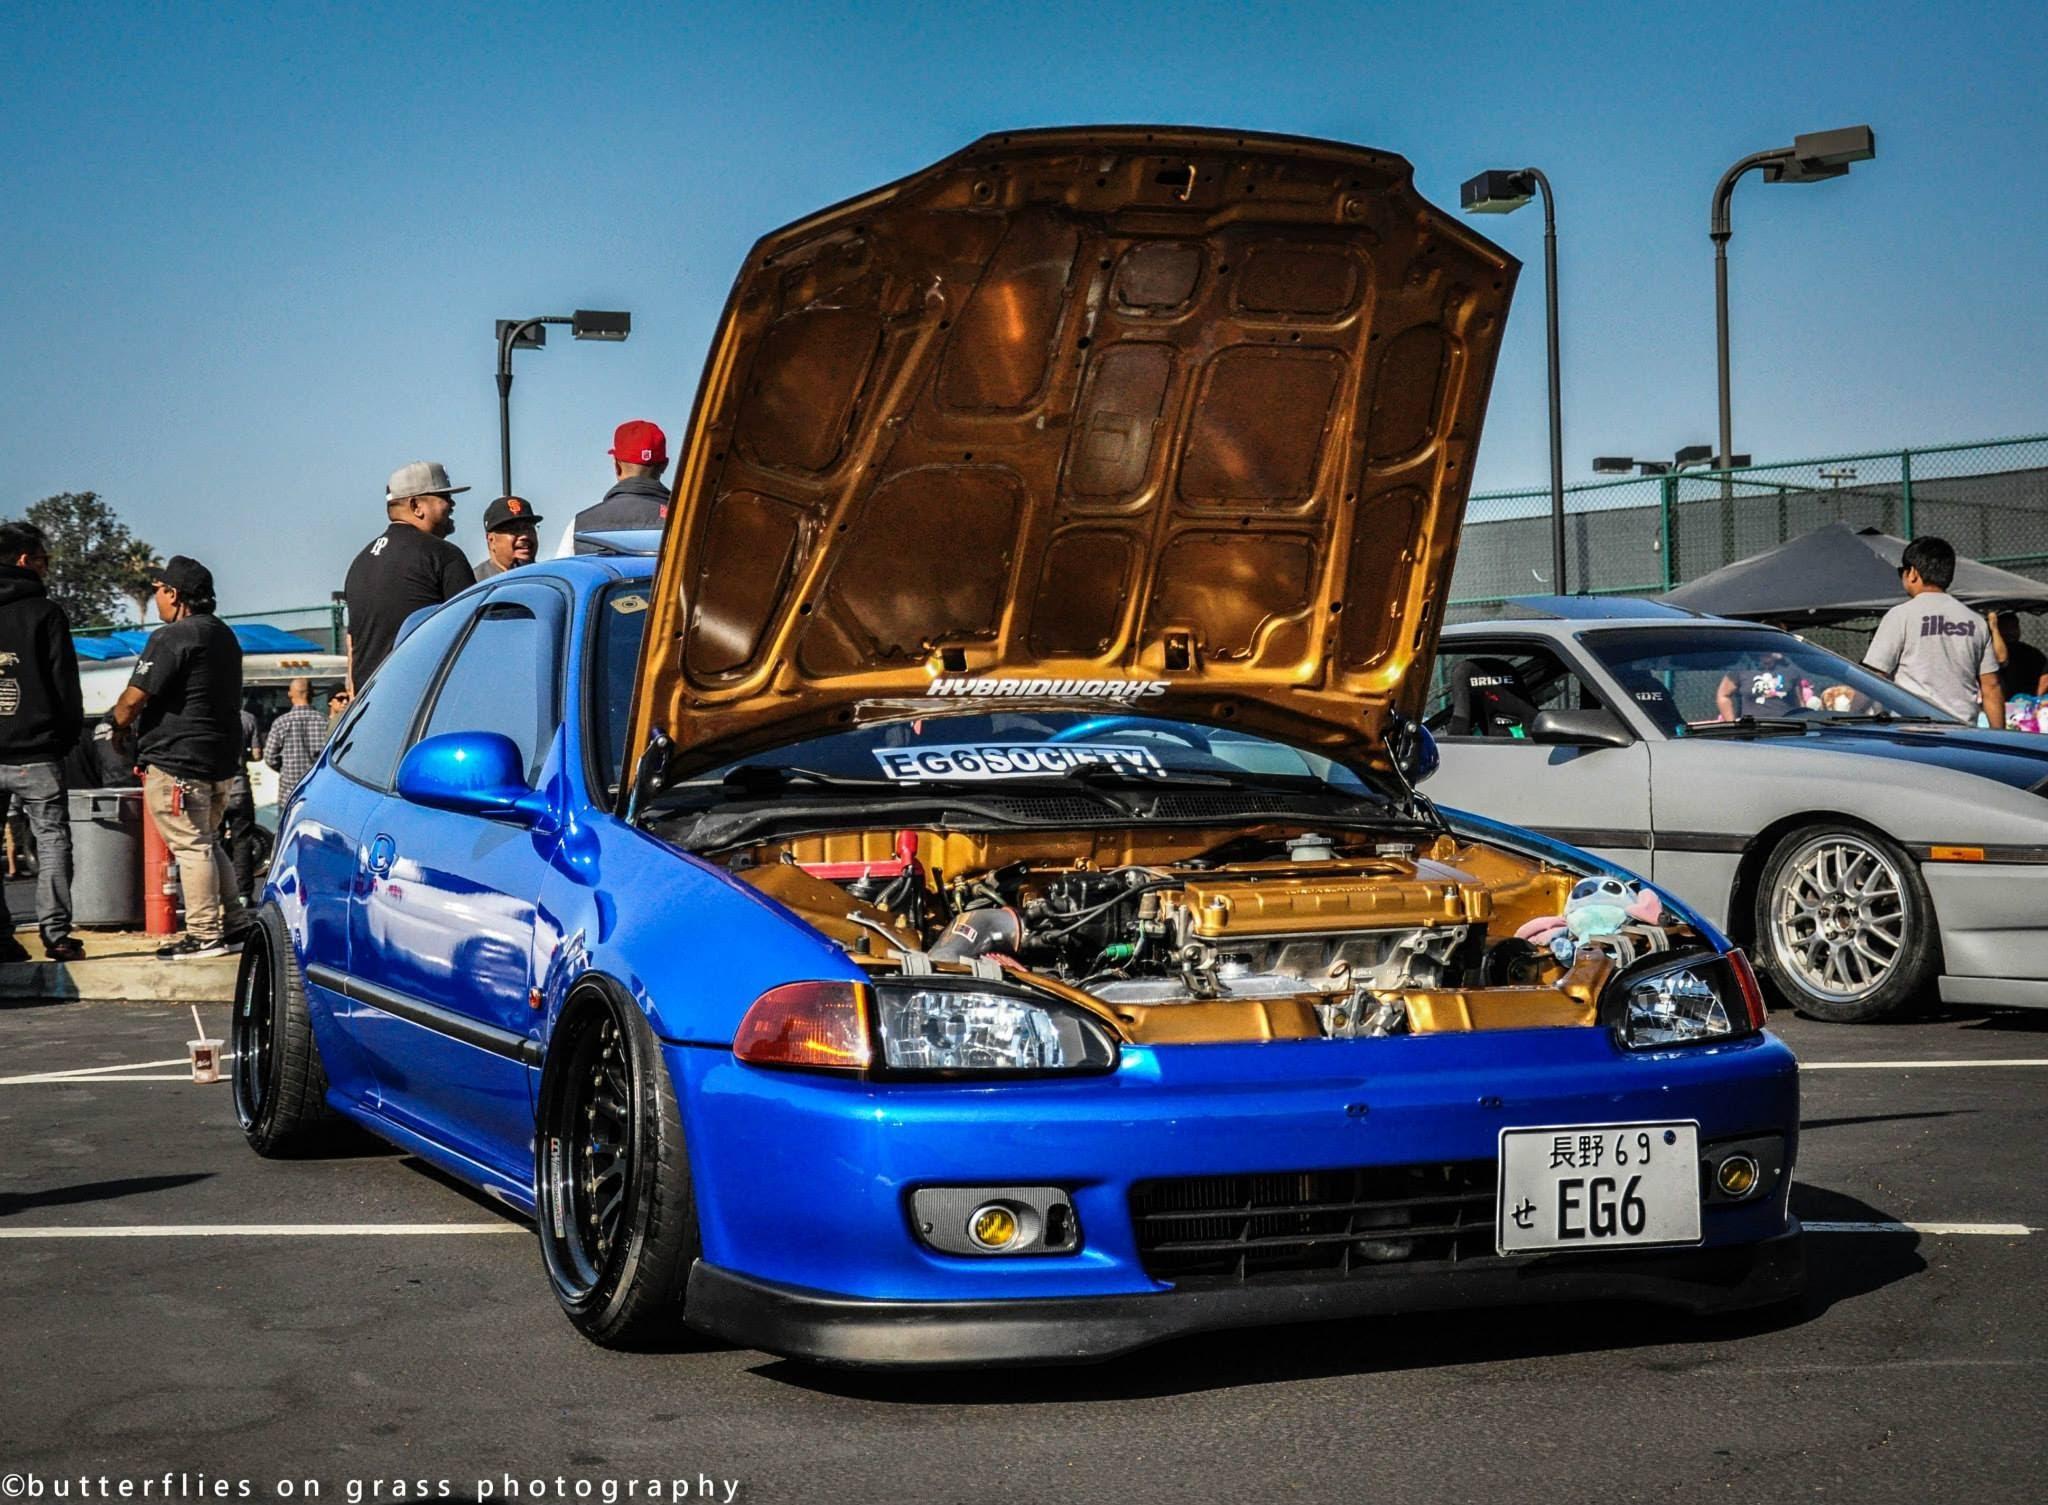 honda civic hatchback v 1992 #10